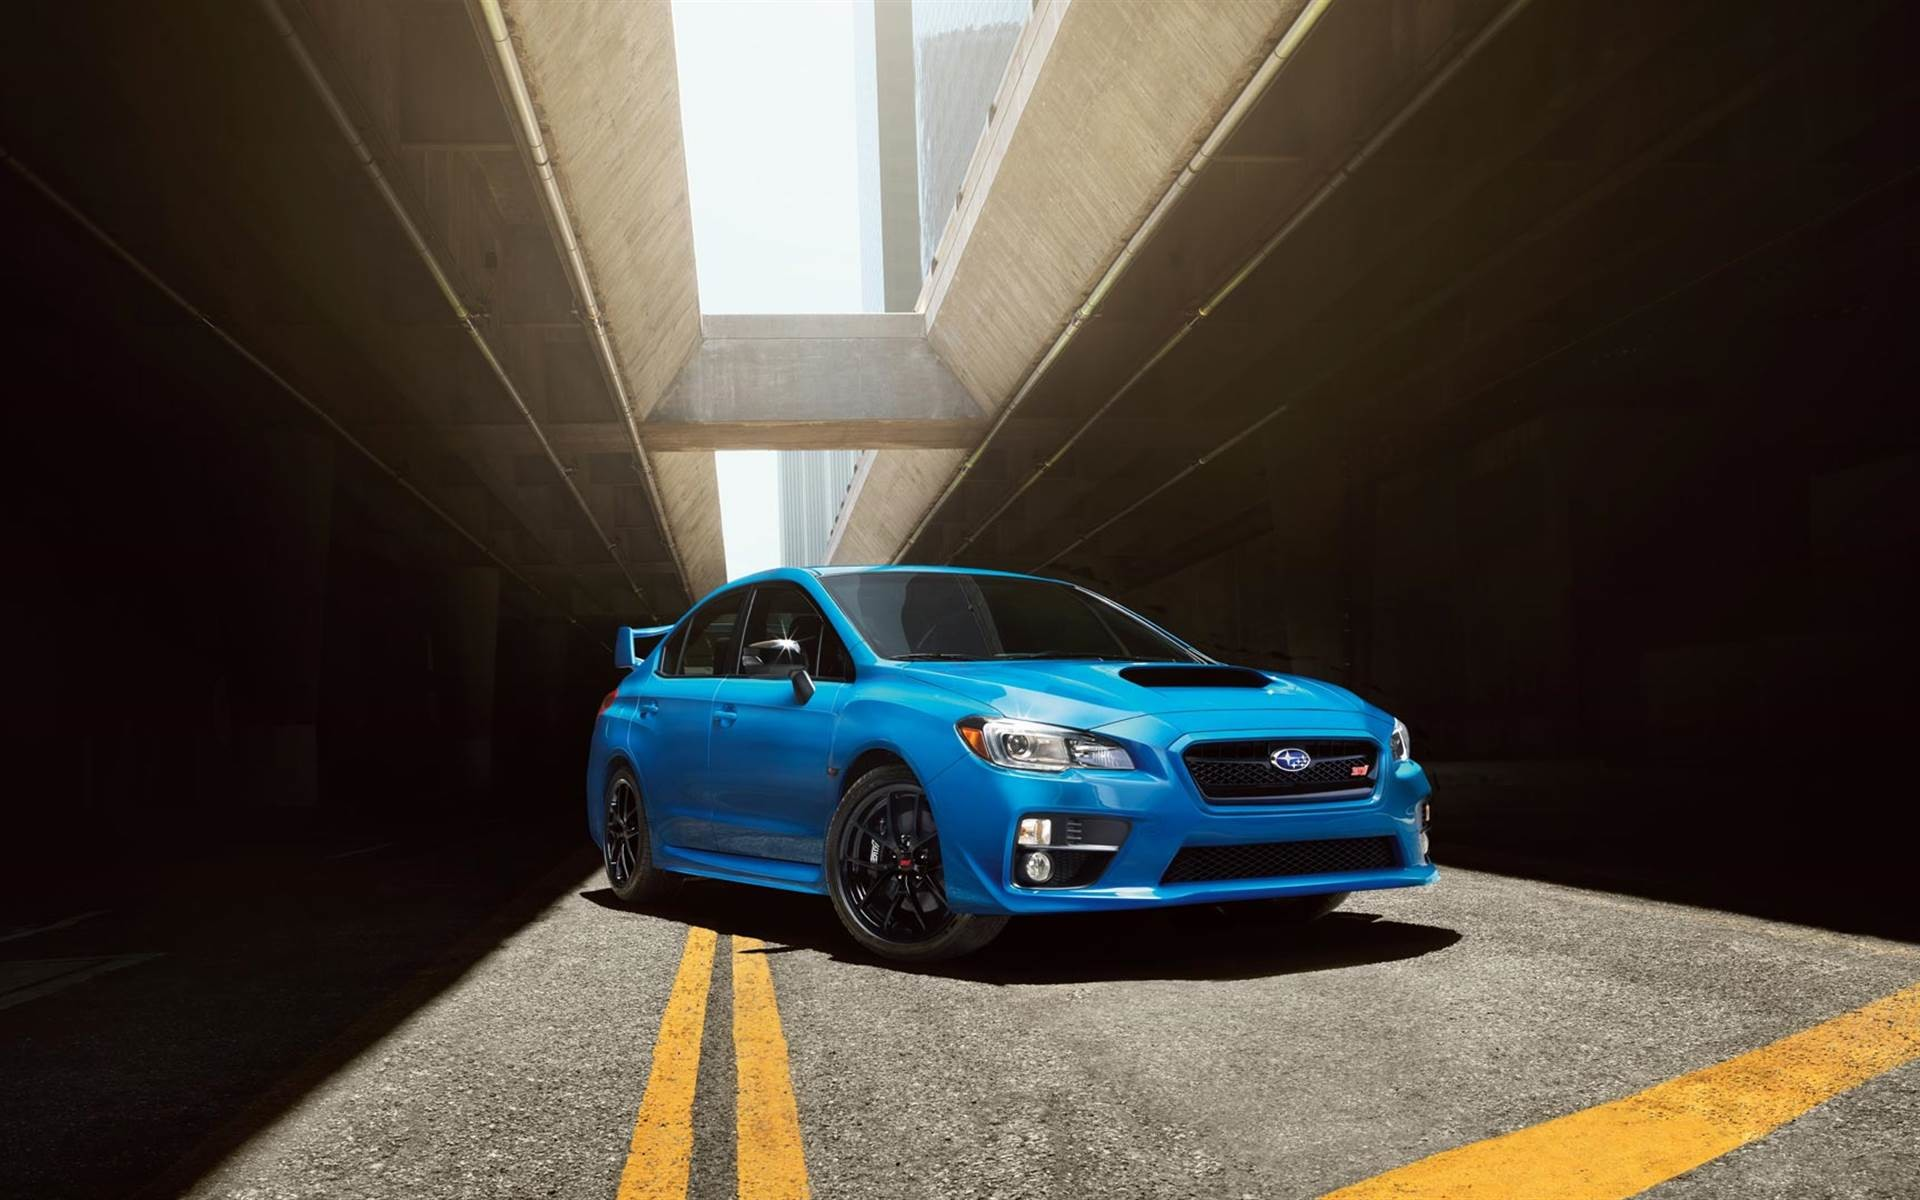 1920x1080 Subaru WRX STI JDM Crystal City Car 2014